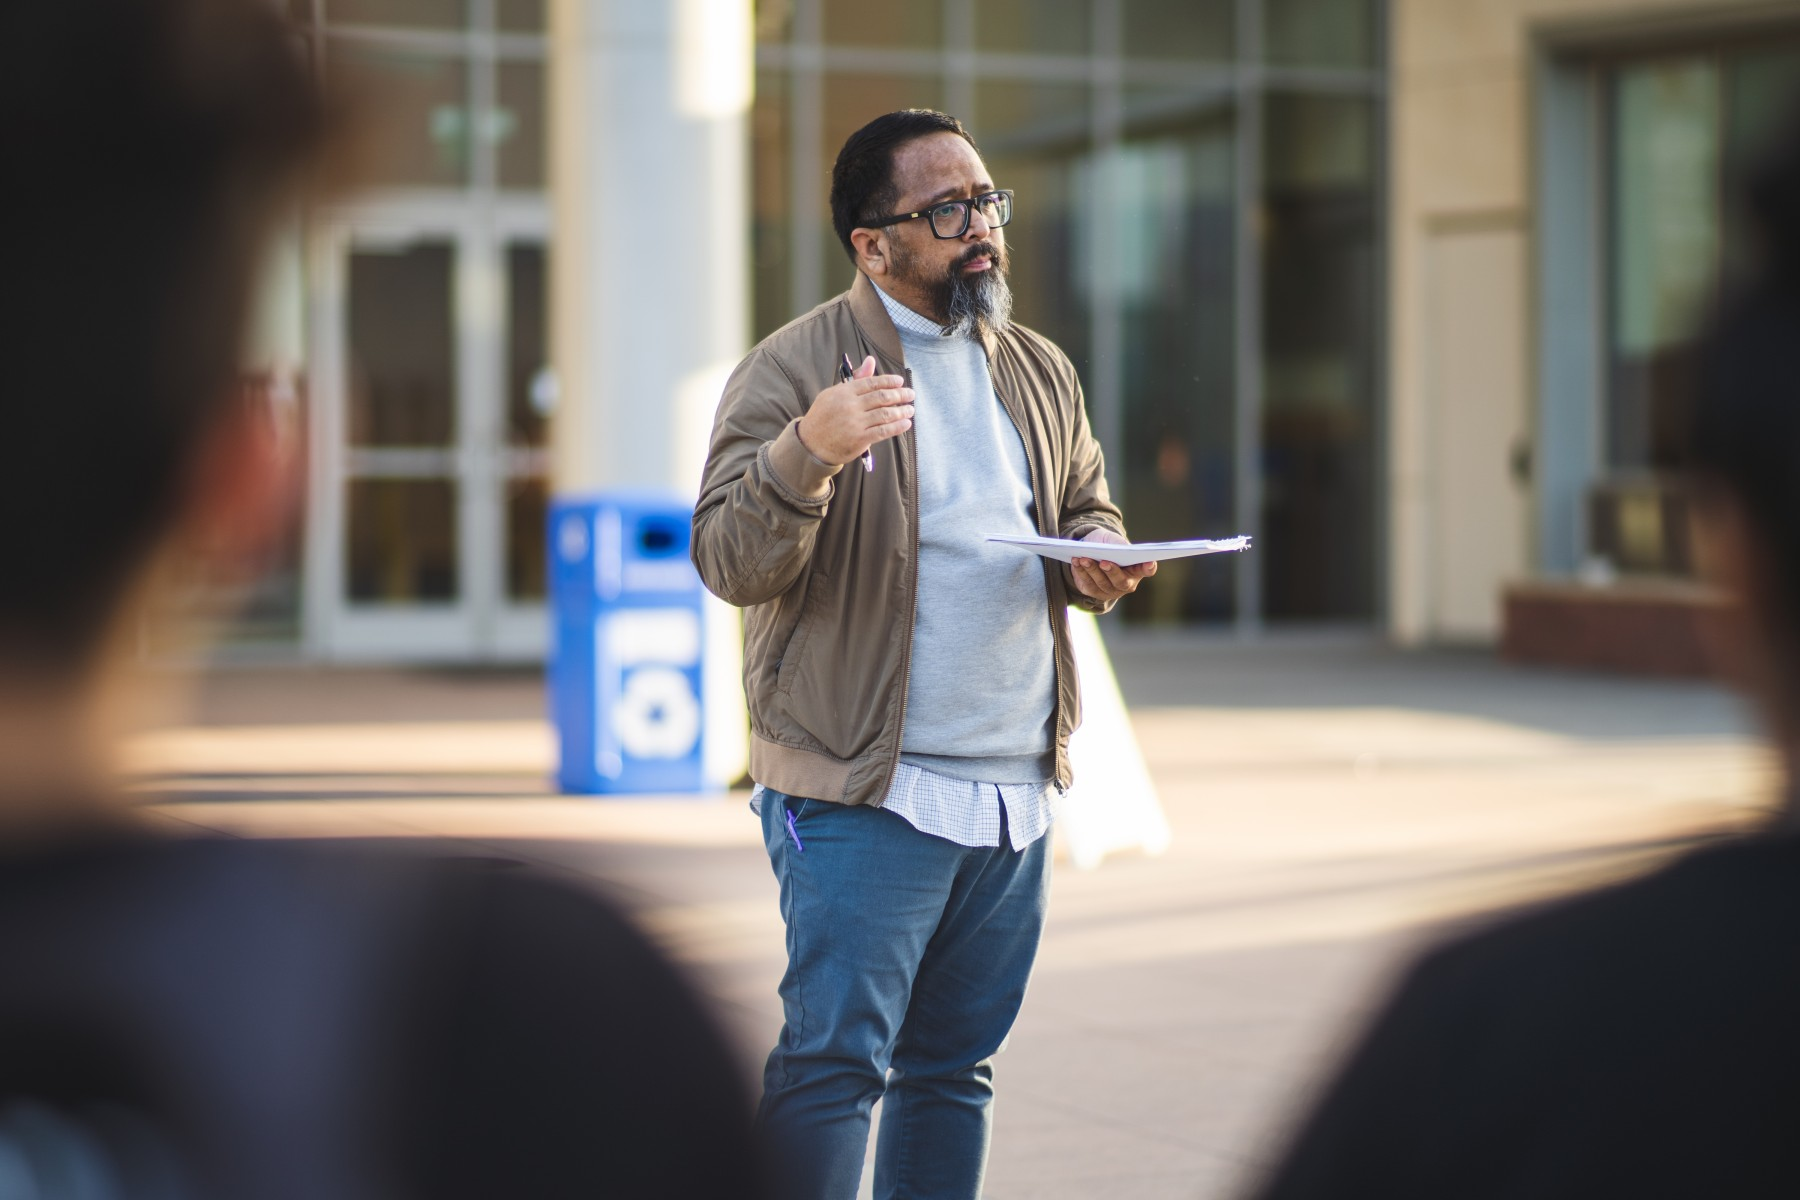 Students in Jason Magabo Perez's Ethnic Studies & Society 301 course have created an Ethnic Studies Pop-Up Gallery, an interactive campus-wide project located on the first floor of the Social and Behavioral Sciences Building.